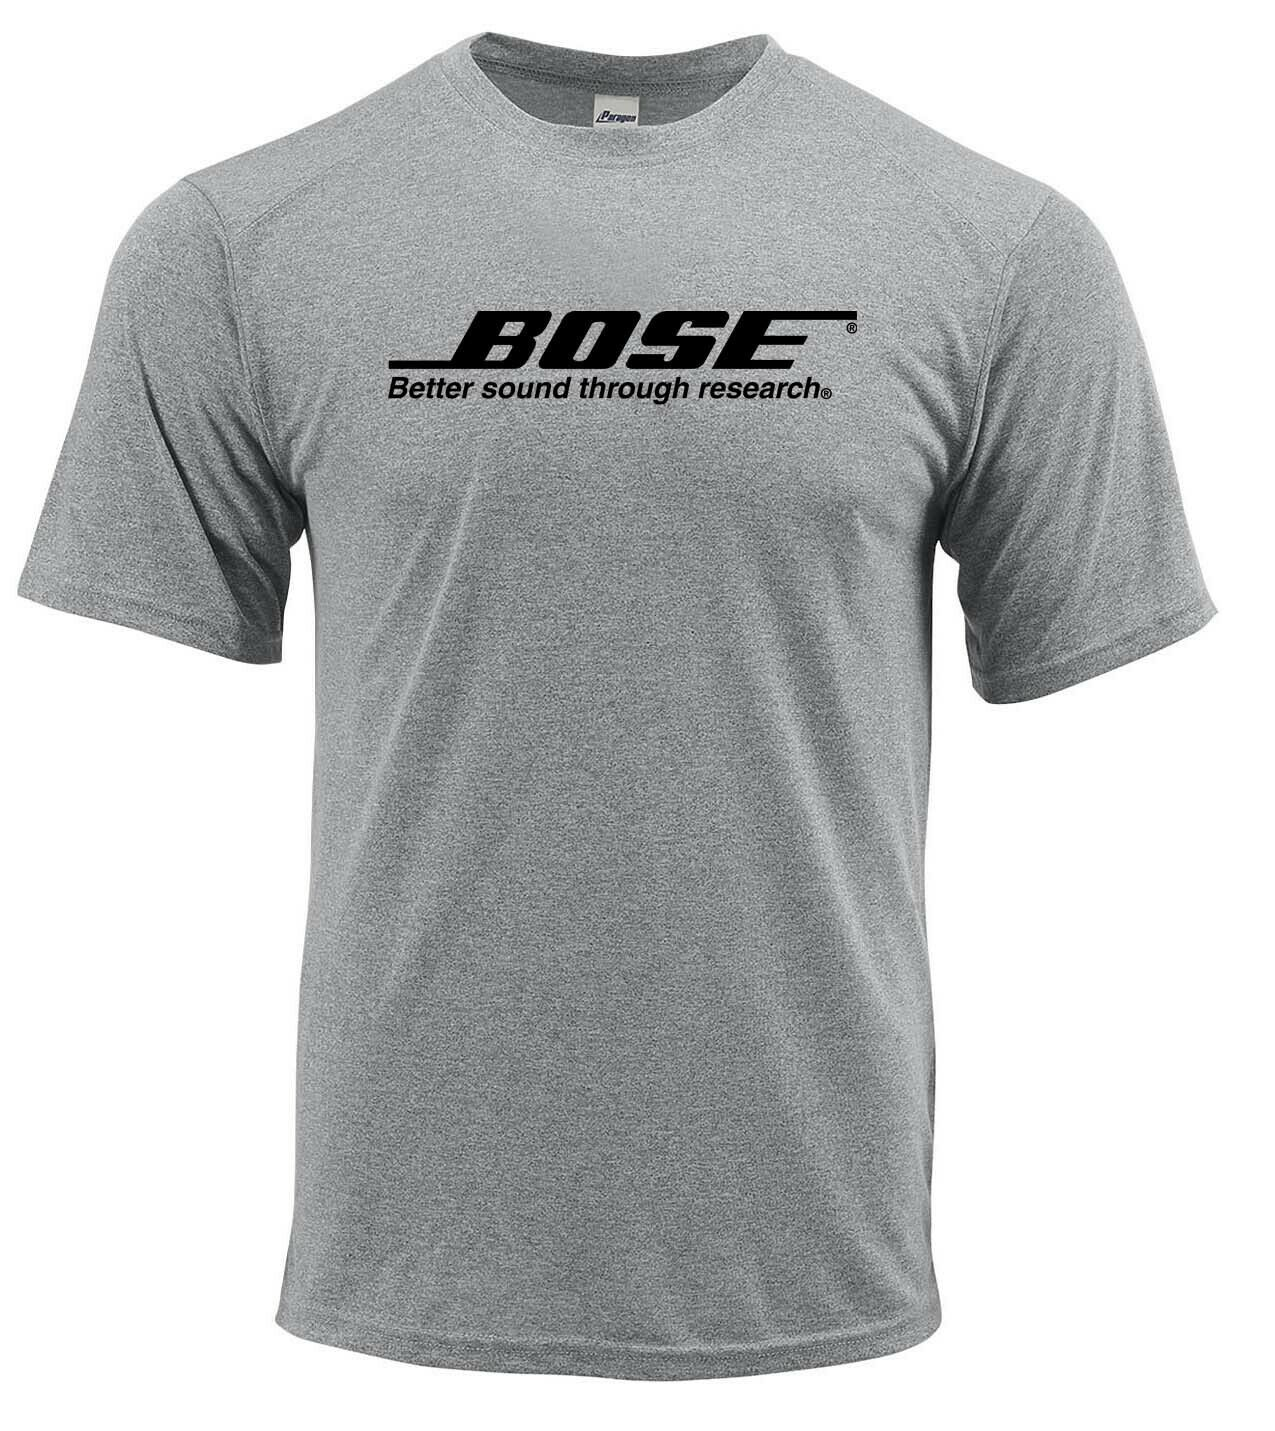 Bose dri fit graphic tshirt moisture wicking car speakers spf active wear tee